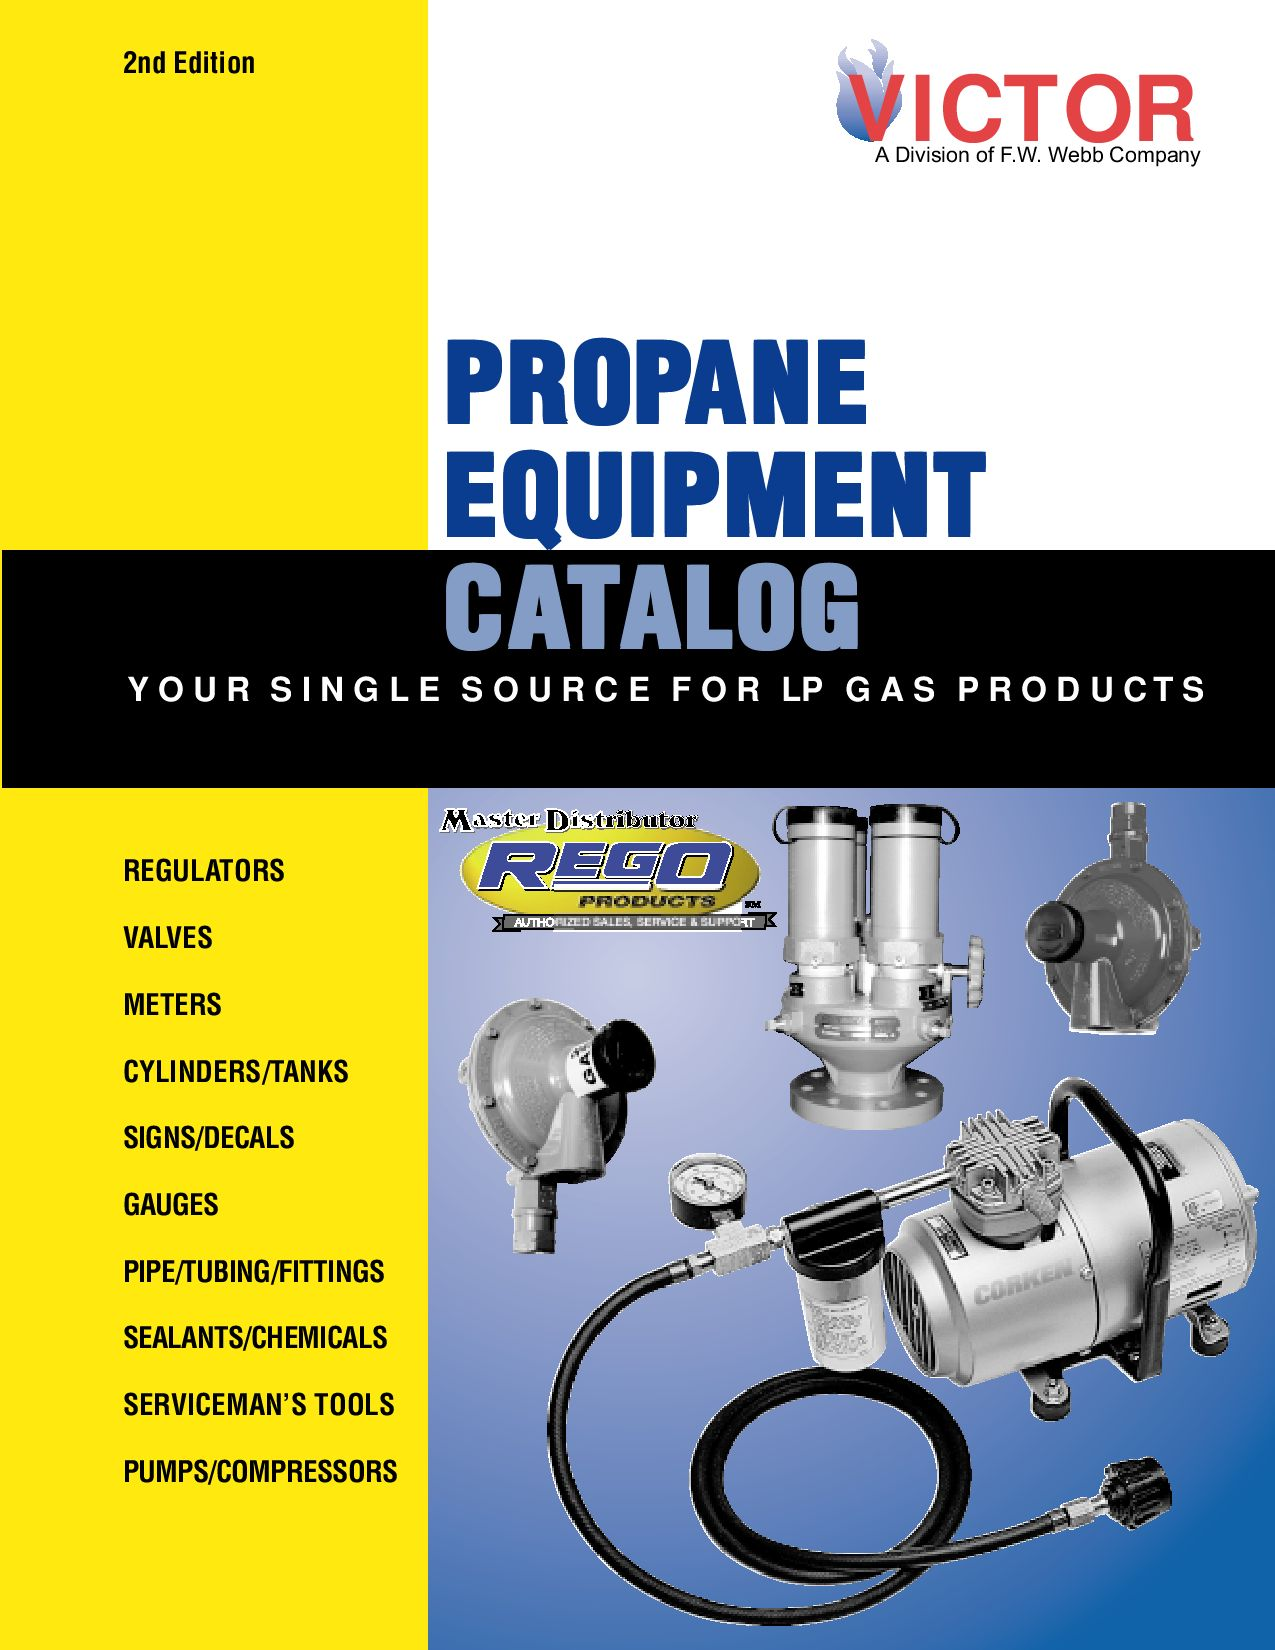 Propane Equipment Catalog By Fw Webb Company Issuu Cat 3046 Engine Diagram